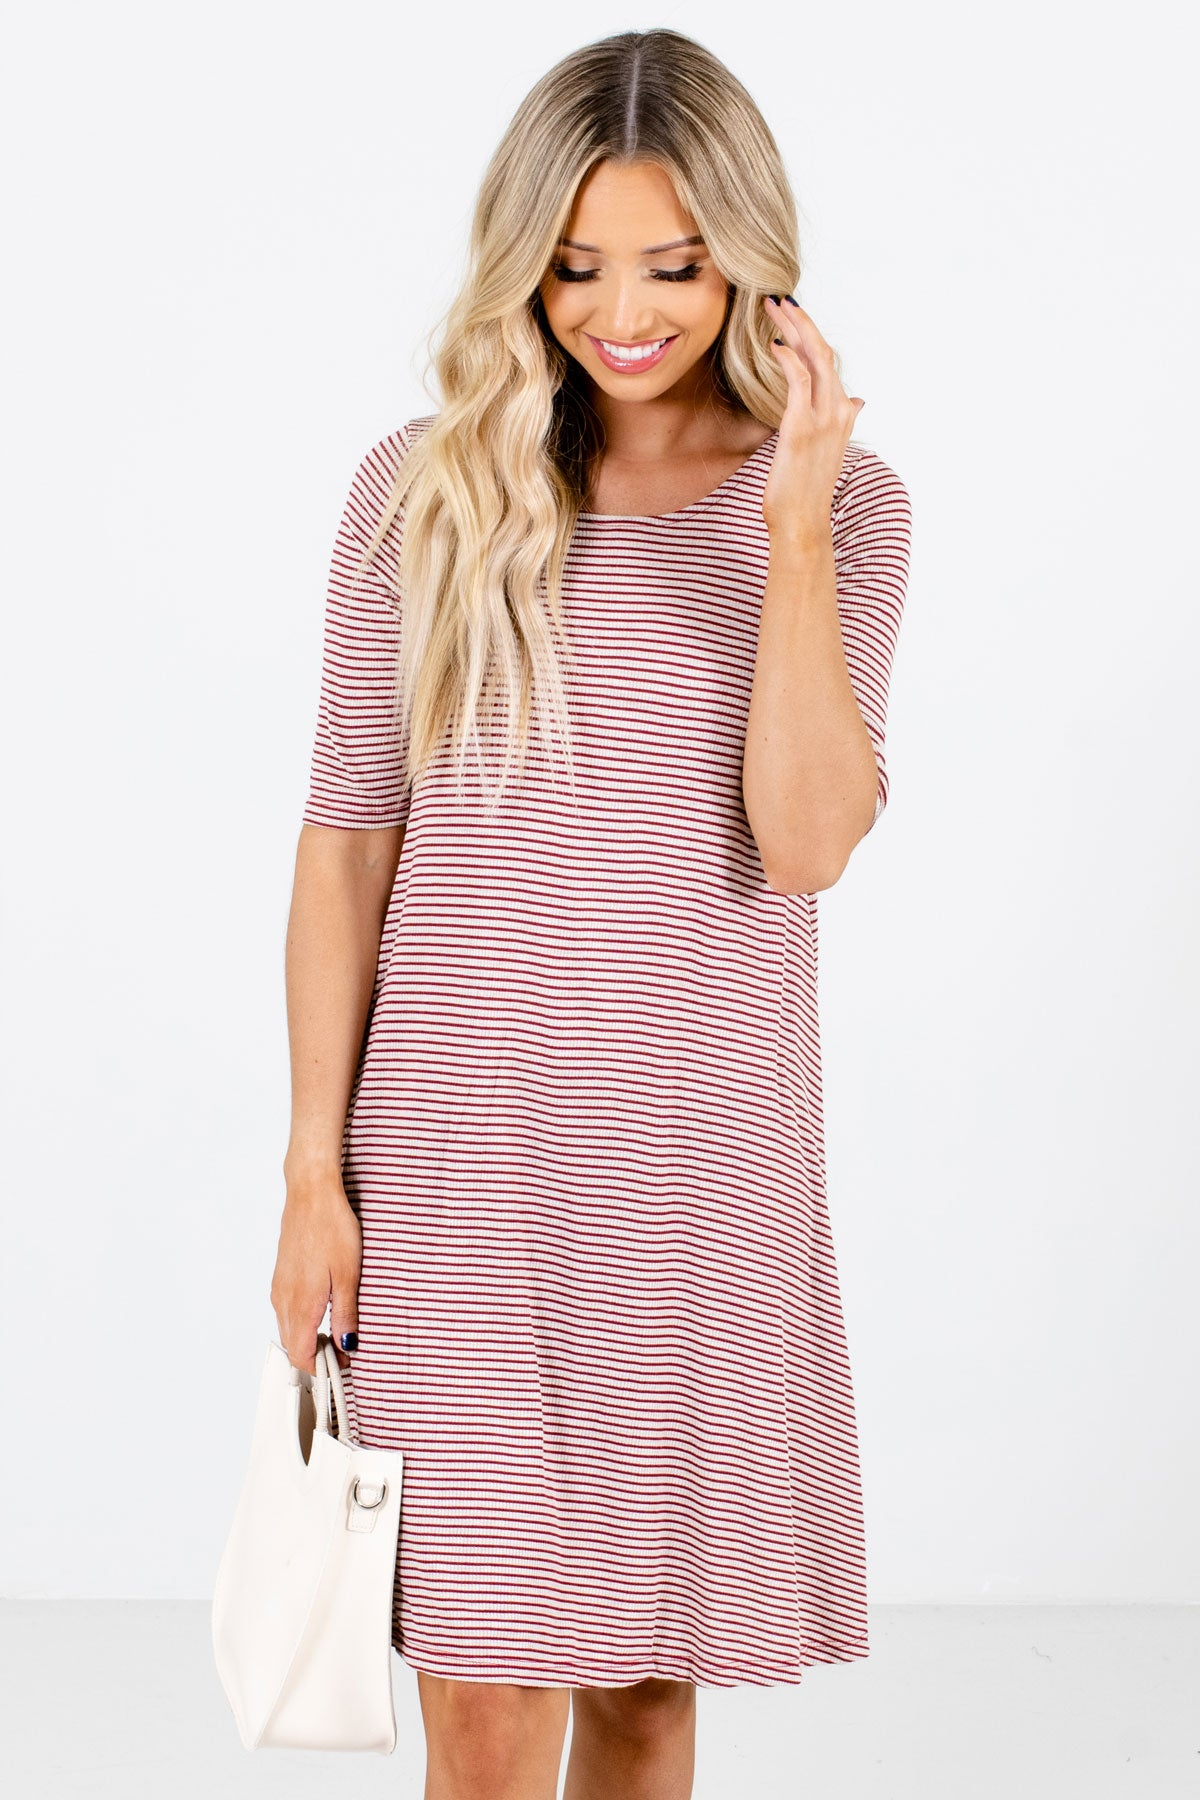 Red and Cream Striped Boutique Knee-Length Dresses for Women